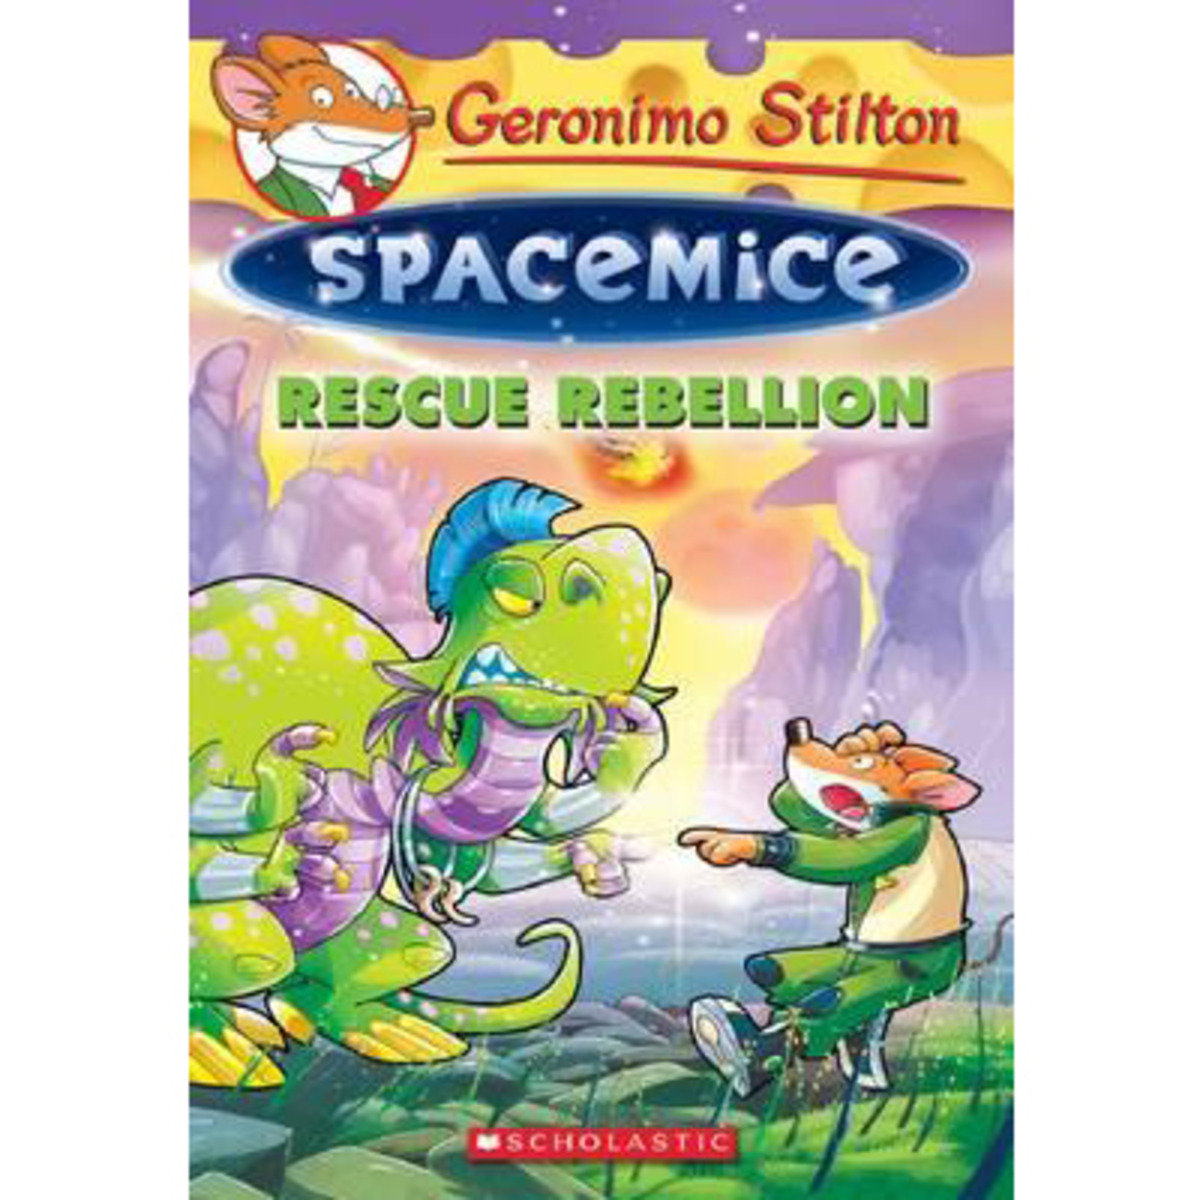 Rescue Rebellion (Geronimo Stilton Spacemice #5)